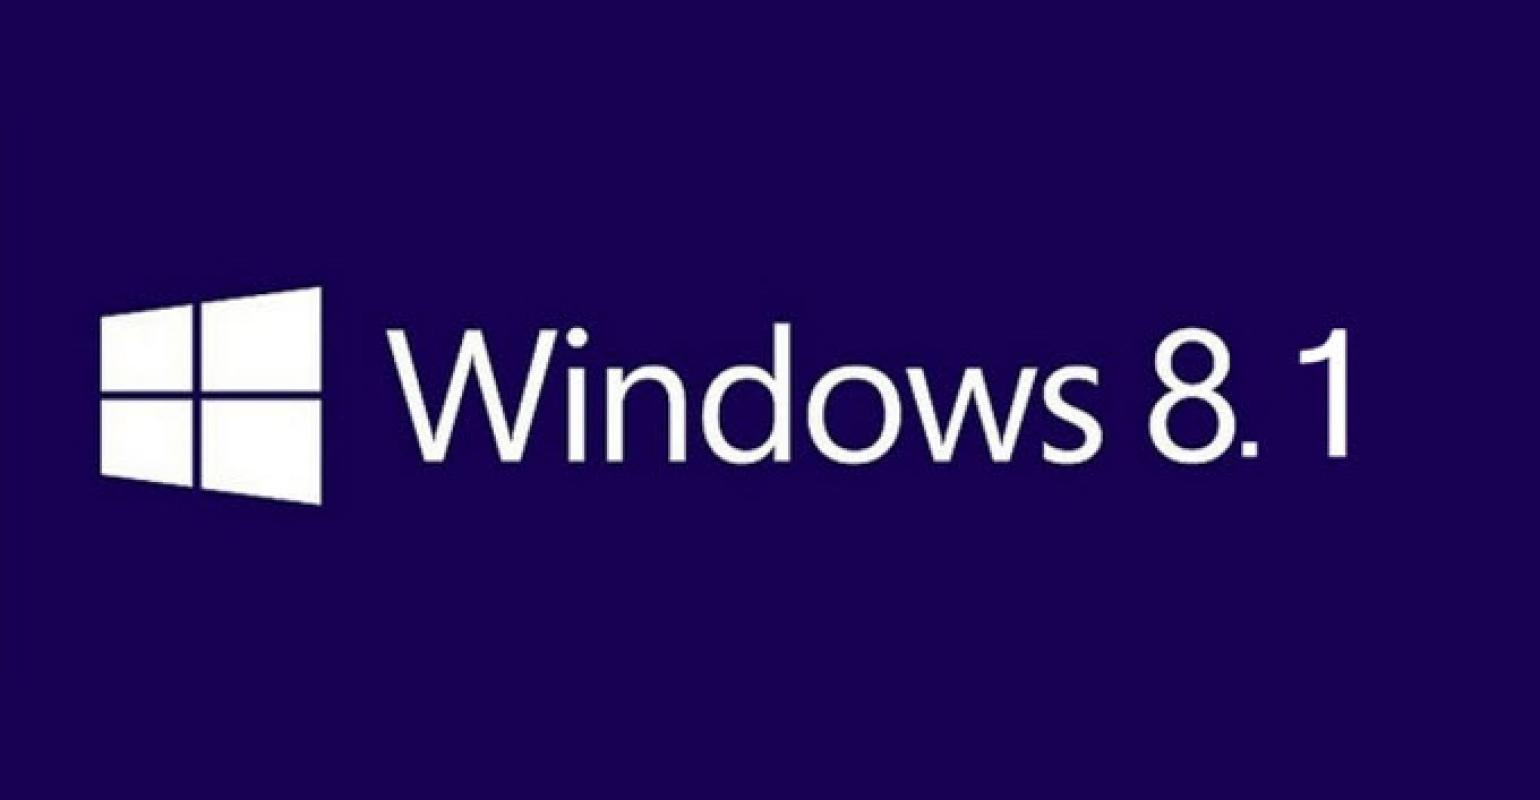 Differences between Windows 8 1, Windows 8 1 Pro, and